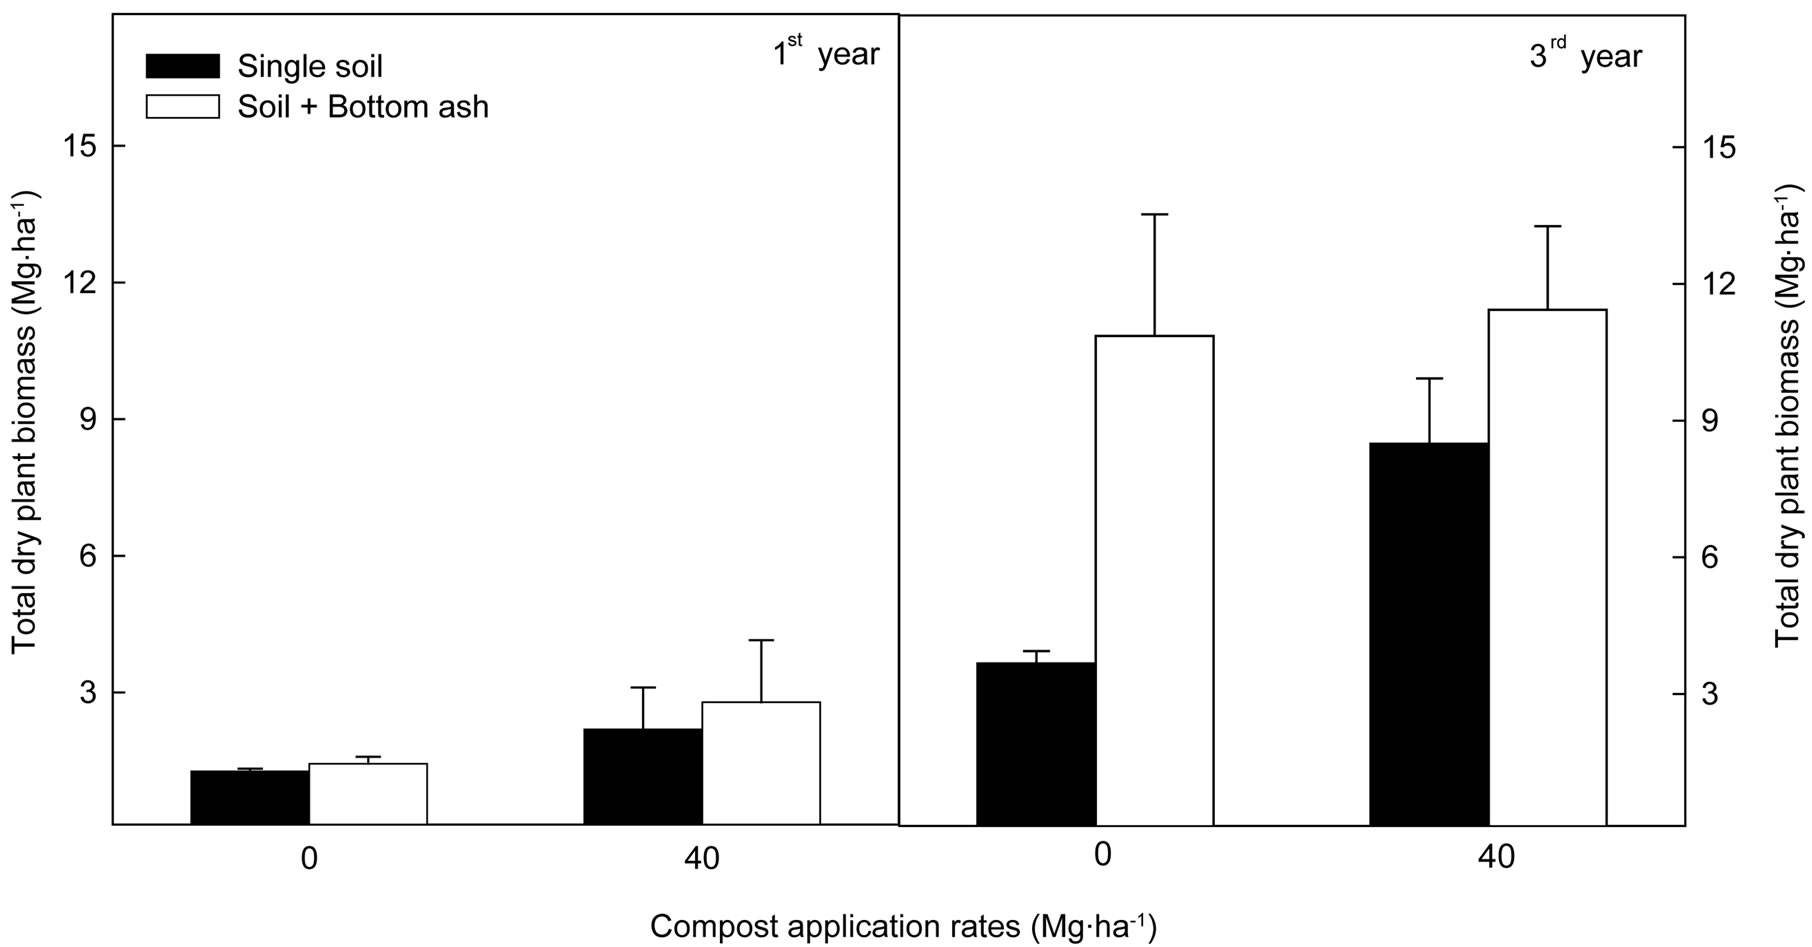 fly ash amendment in compost thesis Three experts describe the commercial use of high carbon wood ash as a compost additive high carbon wood fly ash as a biochar soil amendment-andrew carpenter.